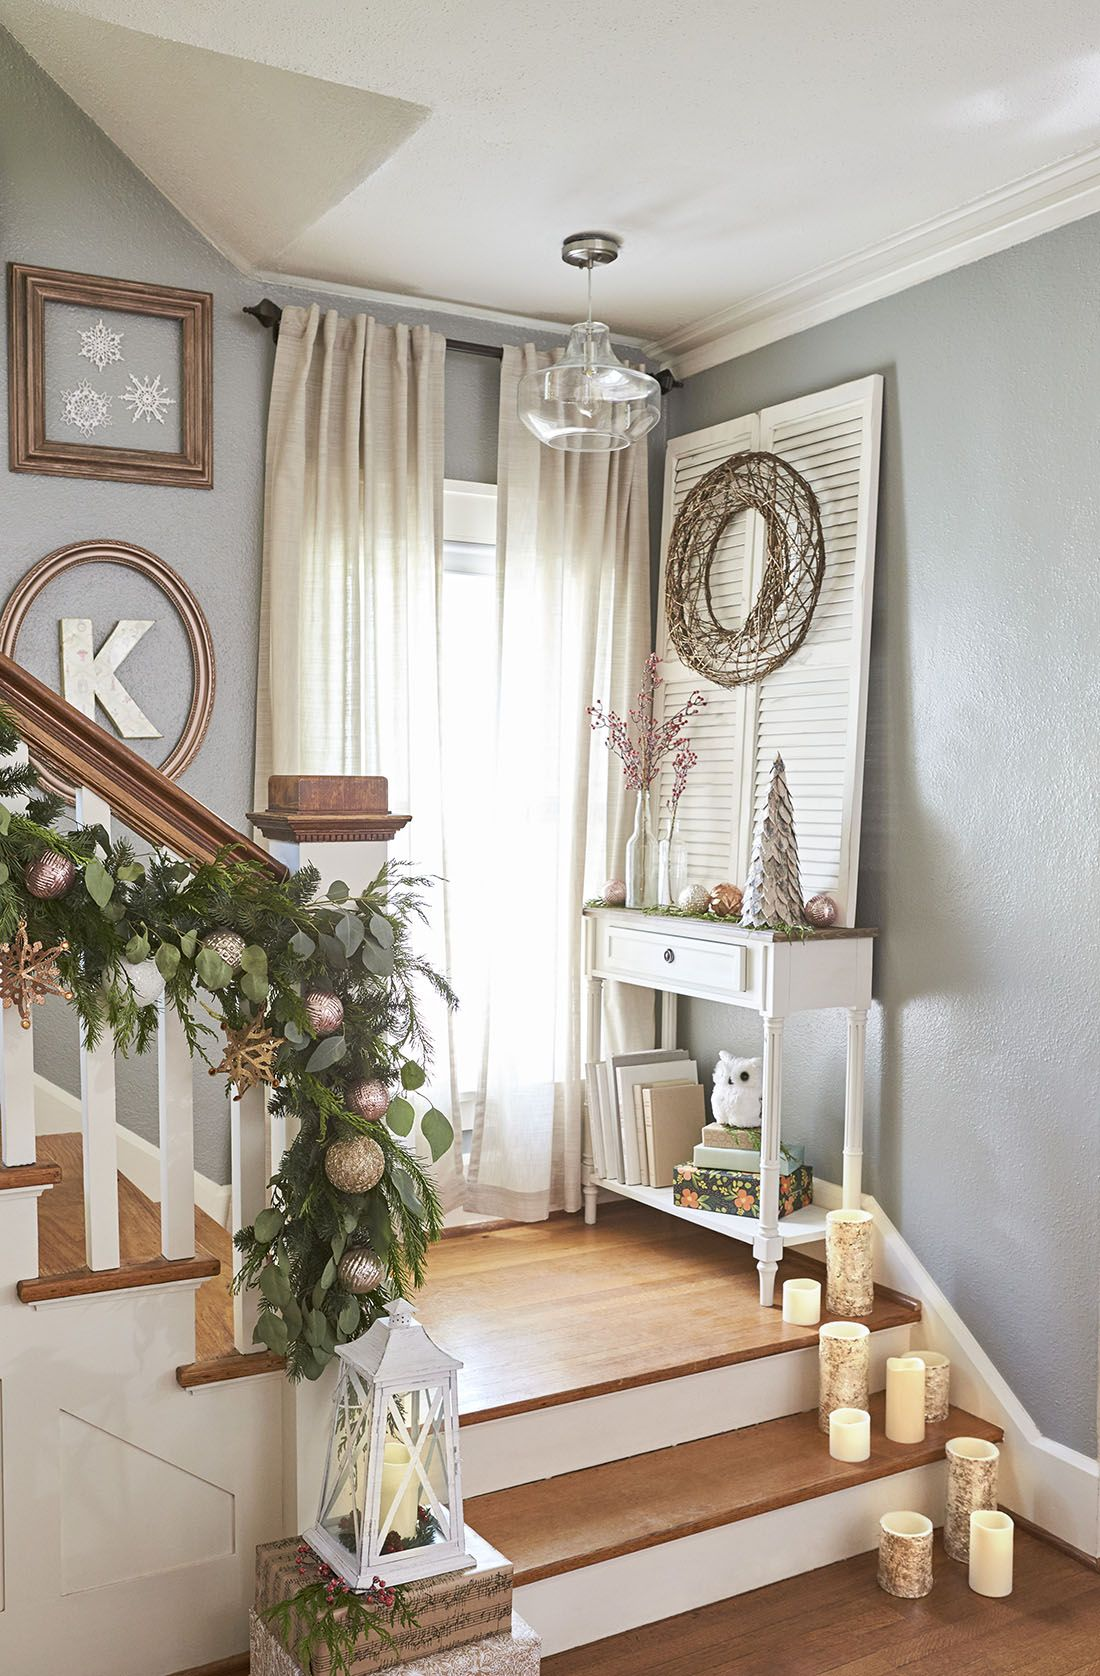 Basement Stair Landing Decorating: Stair Landings Are Good Spots For Holiday Decor. Set Out